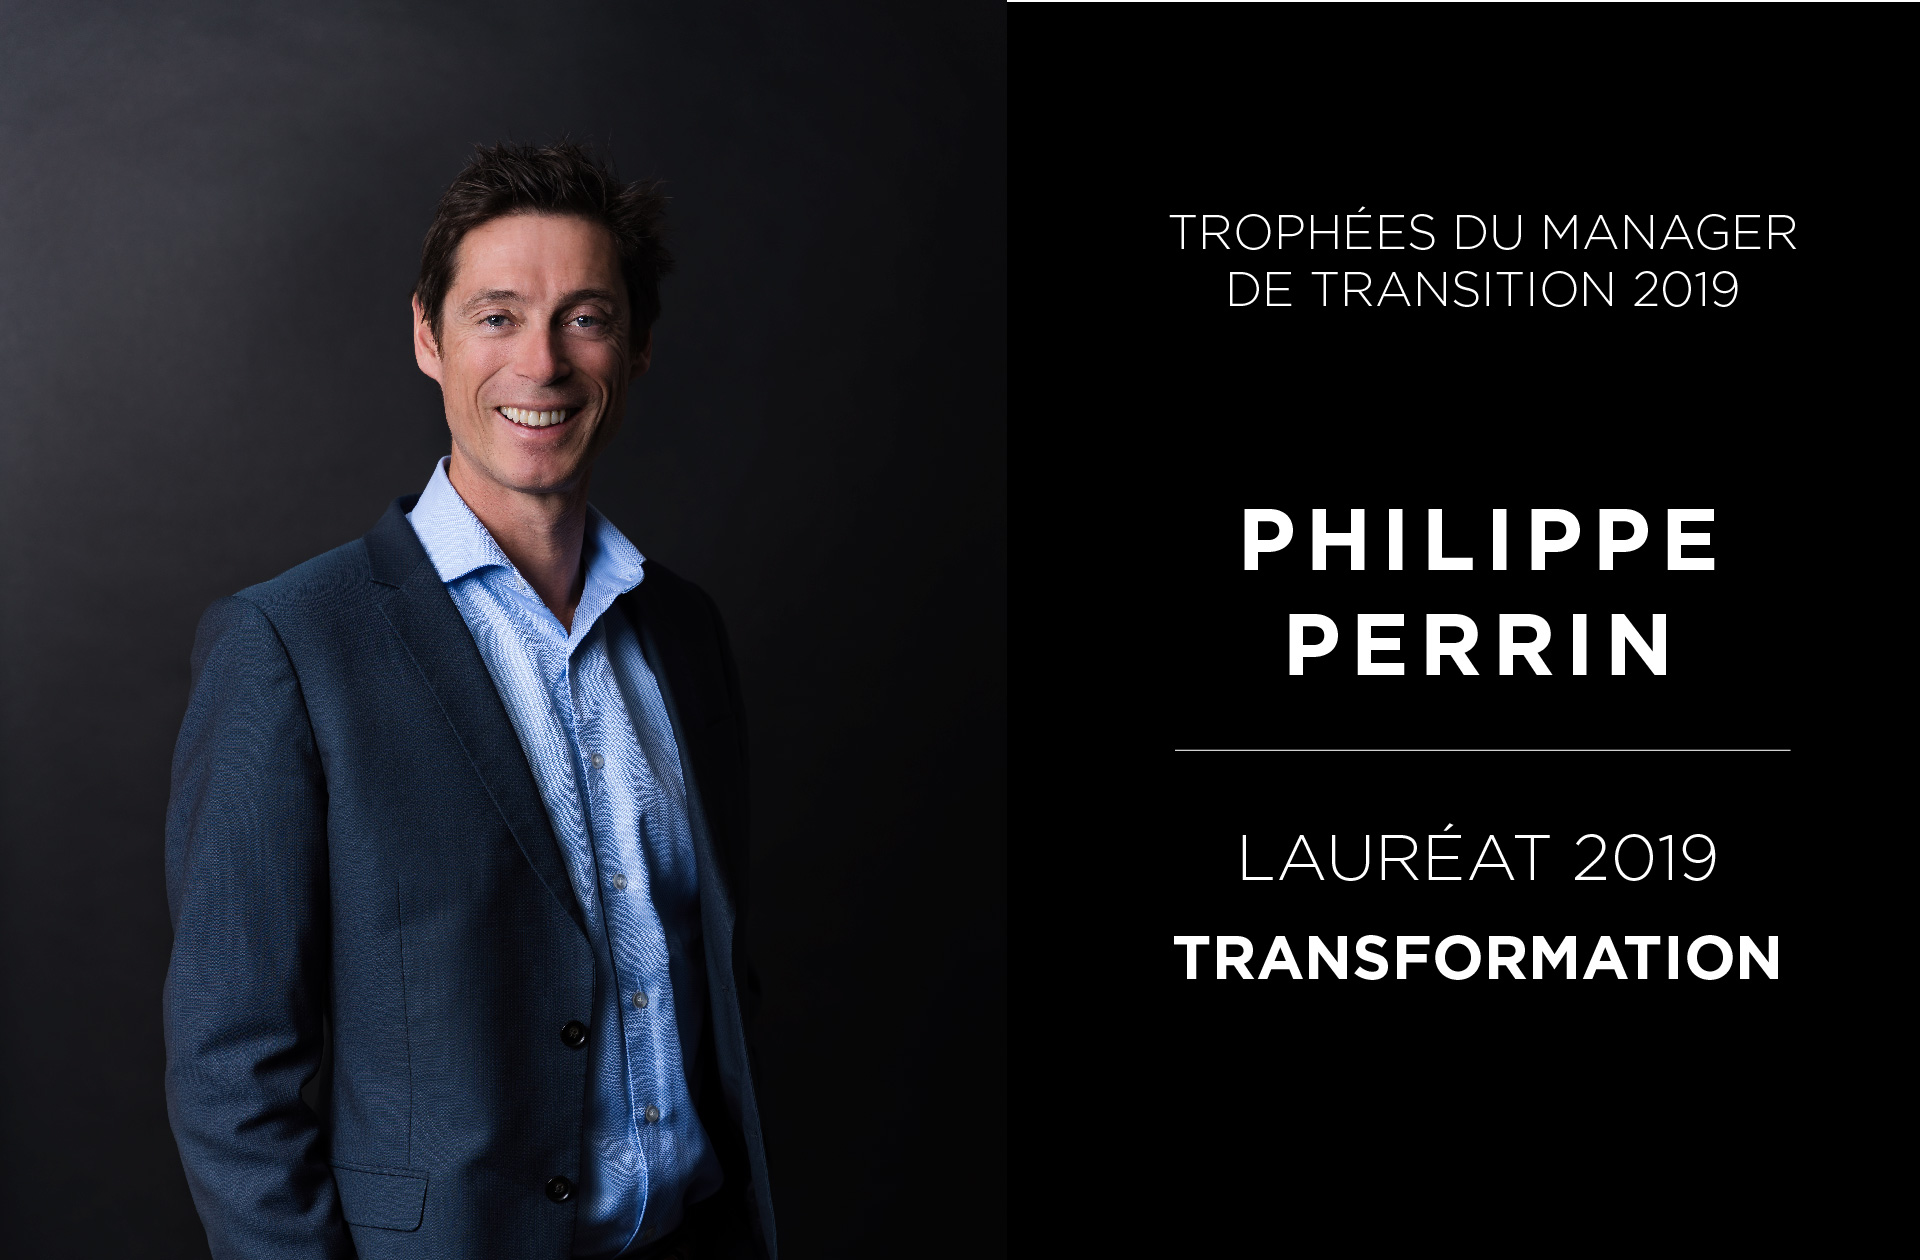 Portrait Philippe Perrin - Trophées du Manager de Transition 2019 - Valtus Management de transition